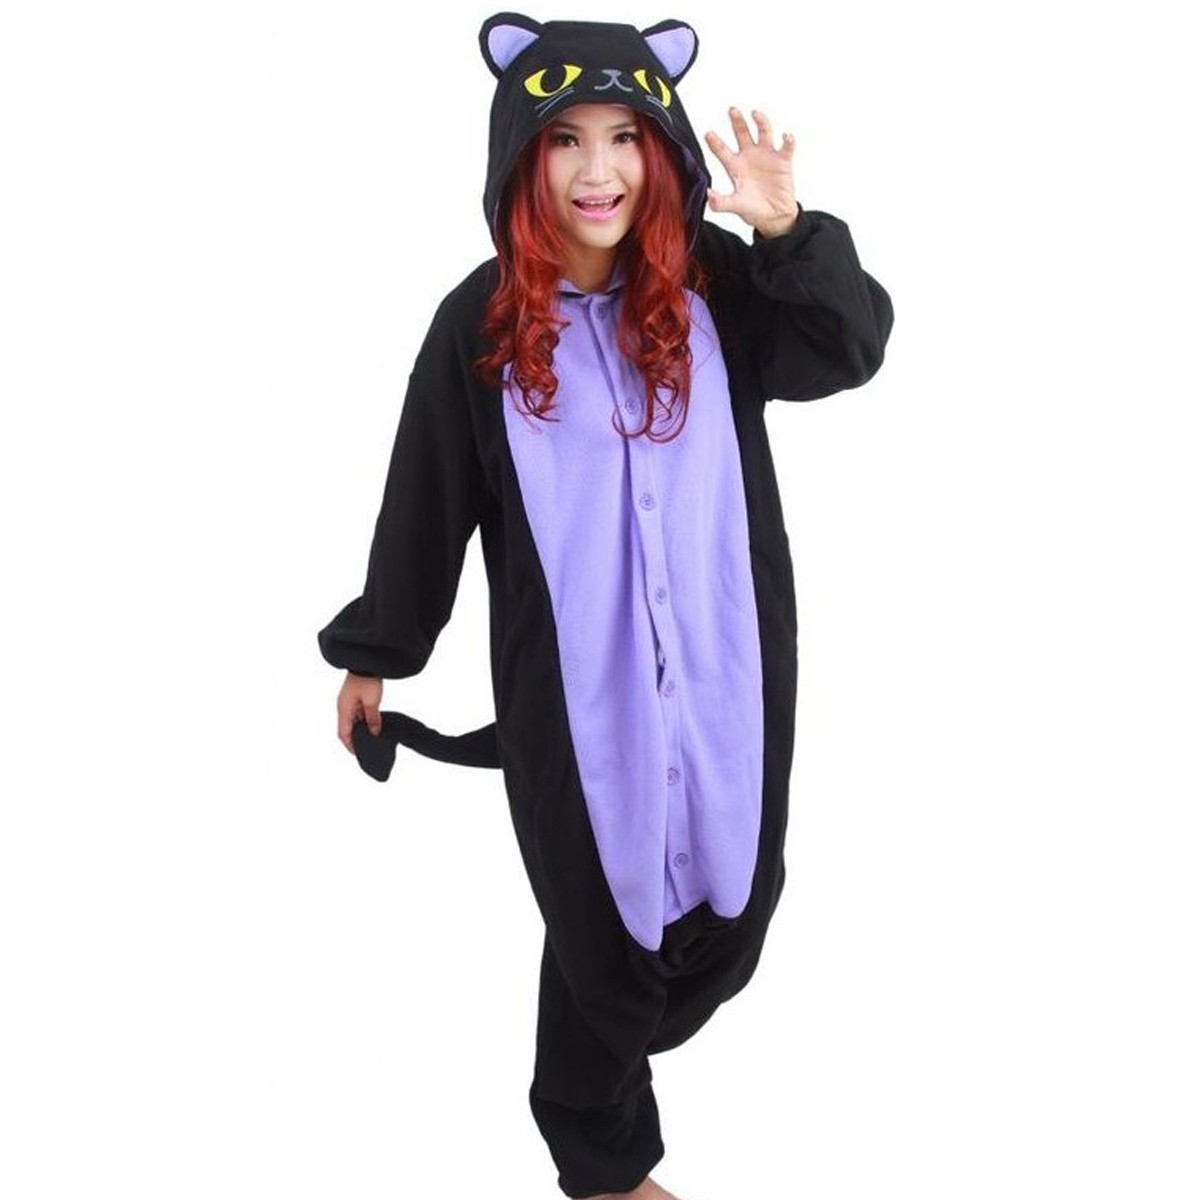 764fb28236a4 Spooky Black Cat Onesie